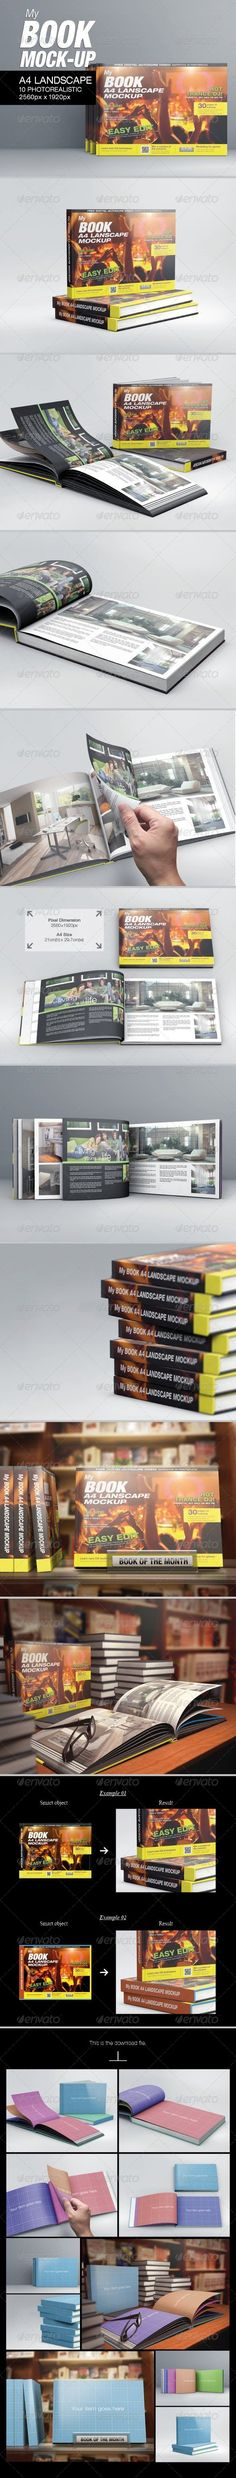 MyBook Landscape Mock-Up Book Mockup Template by kenoric. Graphic Design Templates, Print Templates, Magazine Cover Page, Cover Page Template, Mockup Photoshop, Up Book, Studio Shoot, Best Graphics, Cover Pages